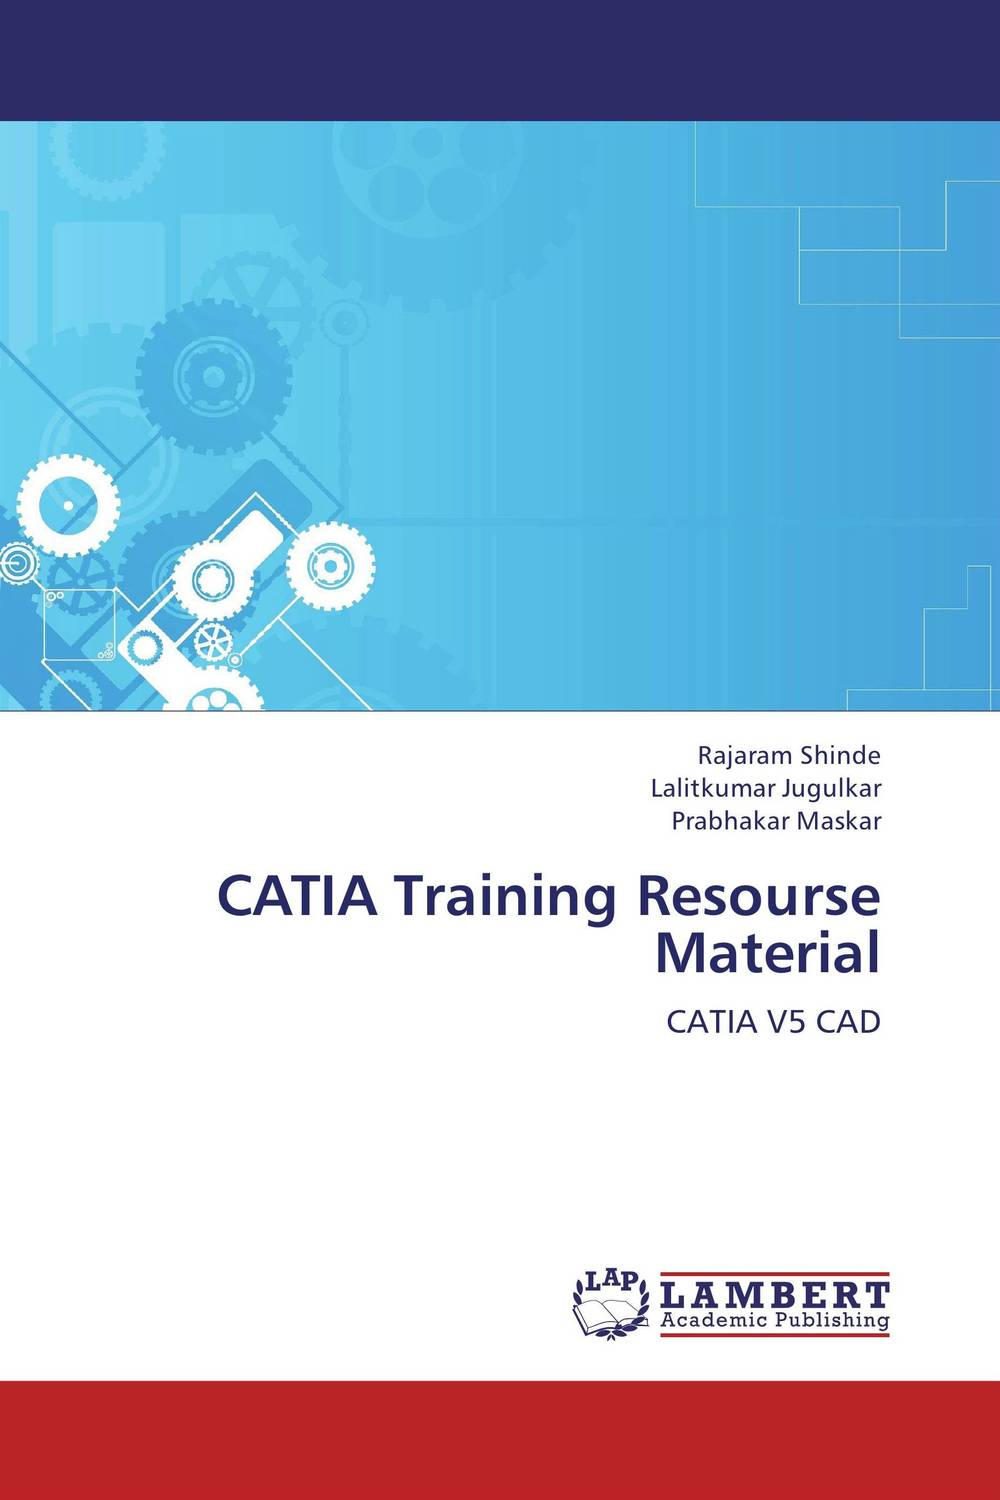 CATIA Training Resourse Material modeling and design of a three dimensional inductor with magnetic core